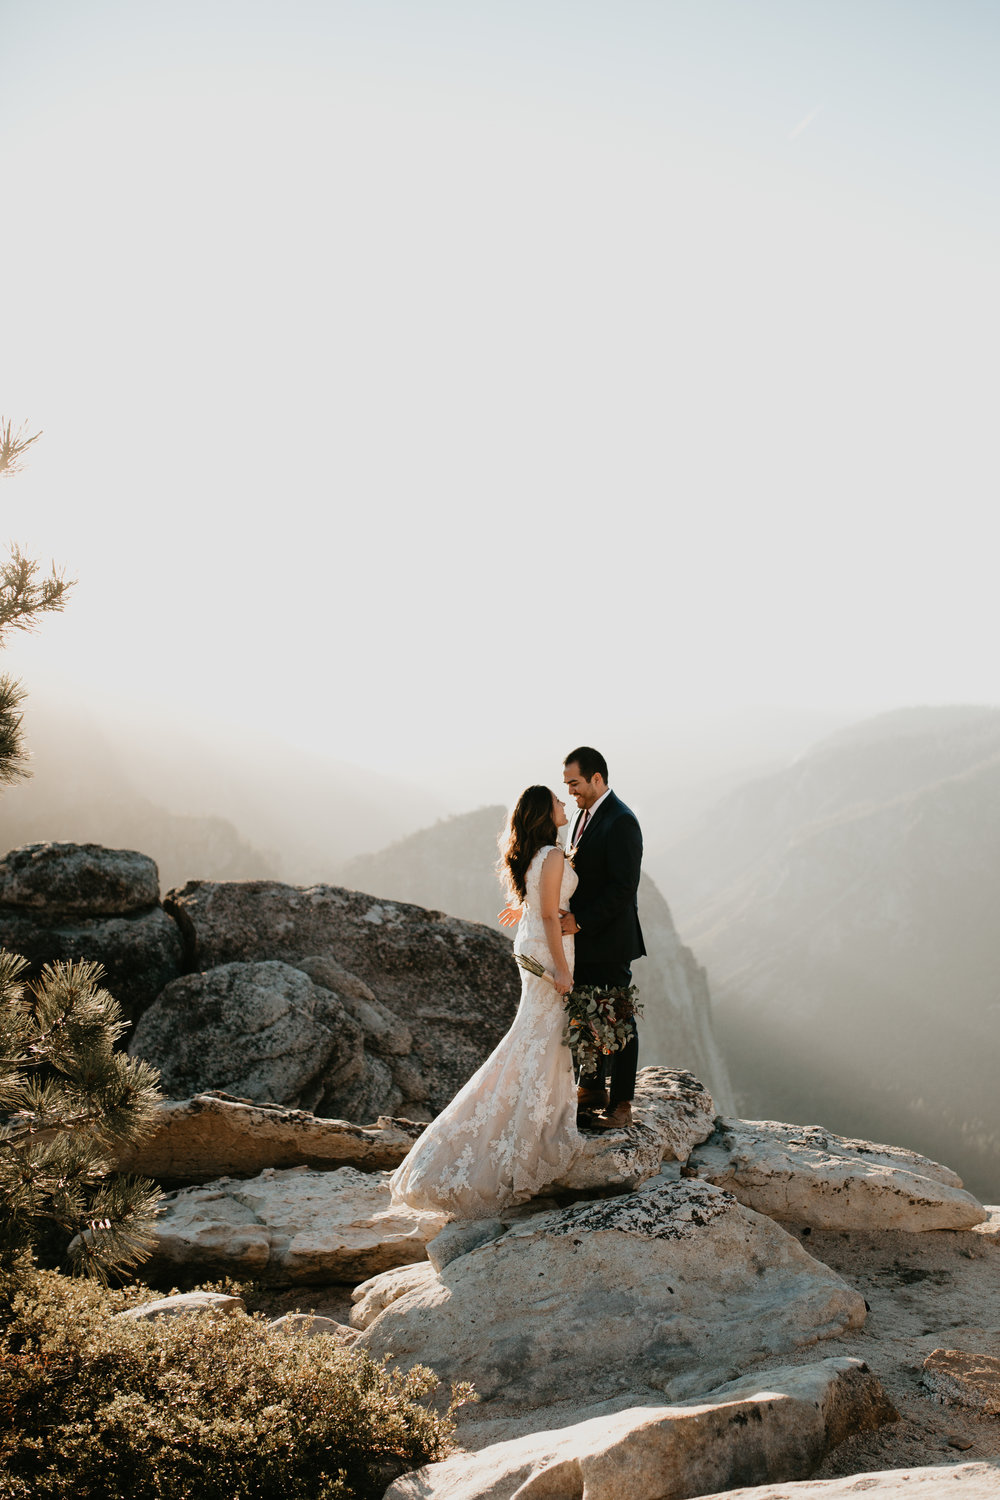 nicole-daacke-photography-intimate-elopement-wedding-yosemite-national-park-california-taft-point-sunset-photos-yosemite-valley-tunnel-view-first-look-sunrise-golden-granite-hiking-adventure-wedding-adventurous-elopement-photographer-92.jpg